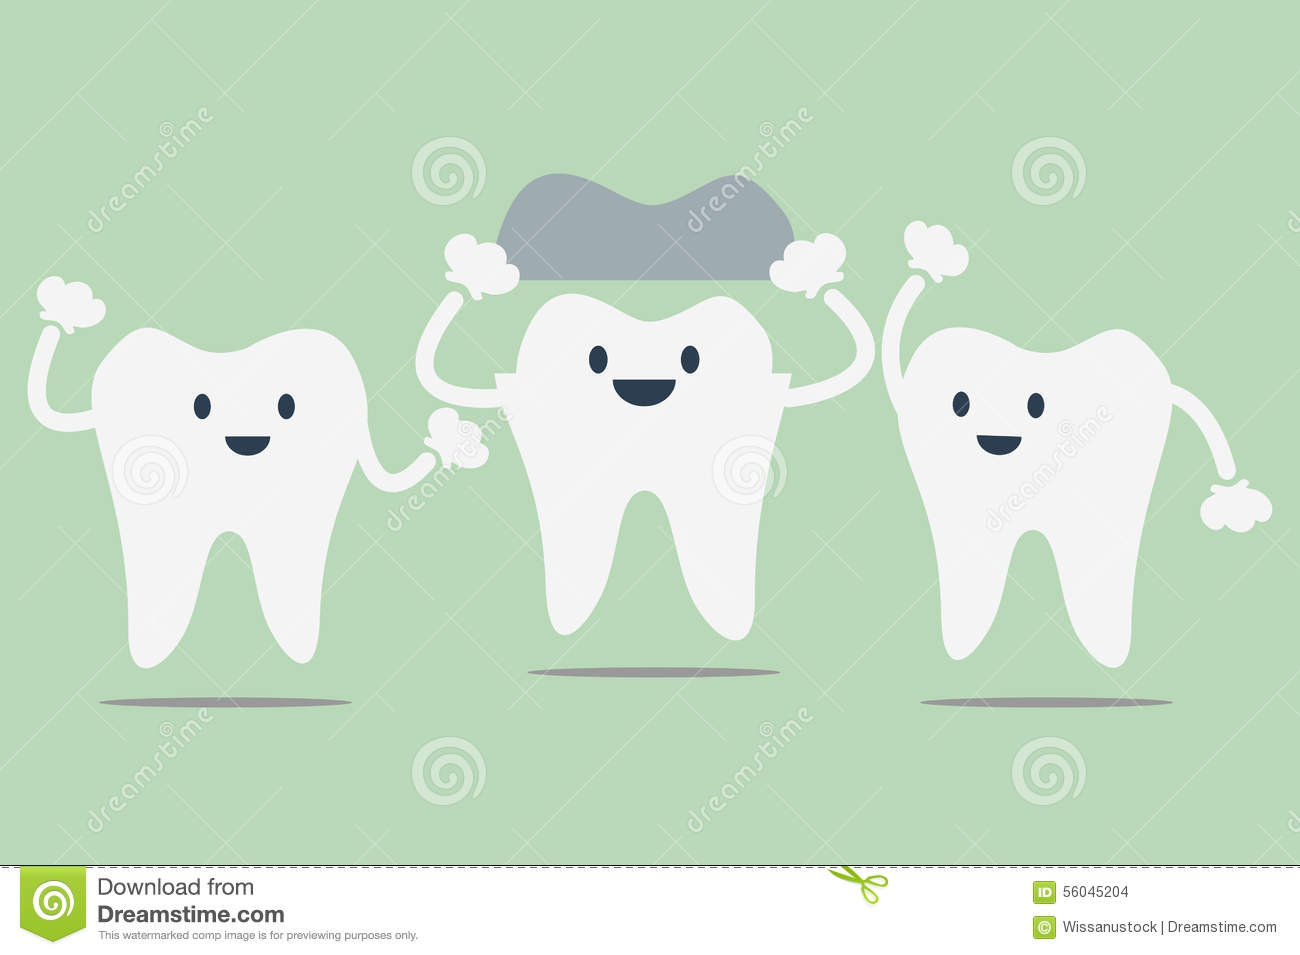 Dental Crowns Stock Vector Illustration Of Teeth Damage 56045204 Over 2,815 dental crown pictures to choose from, with no signup needed. dreamstime com